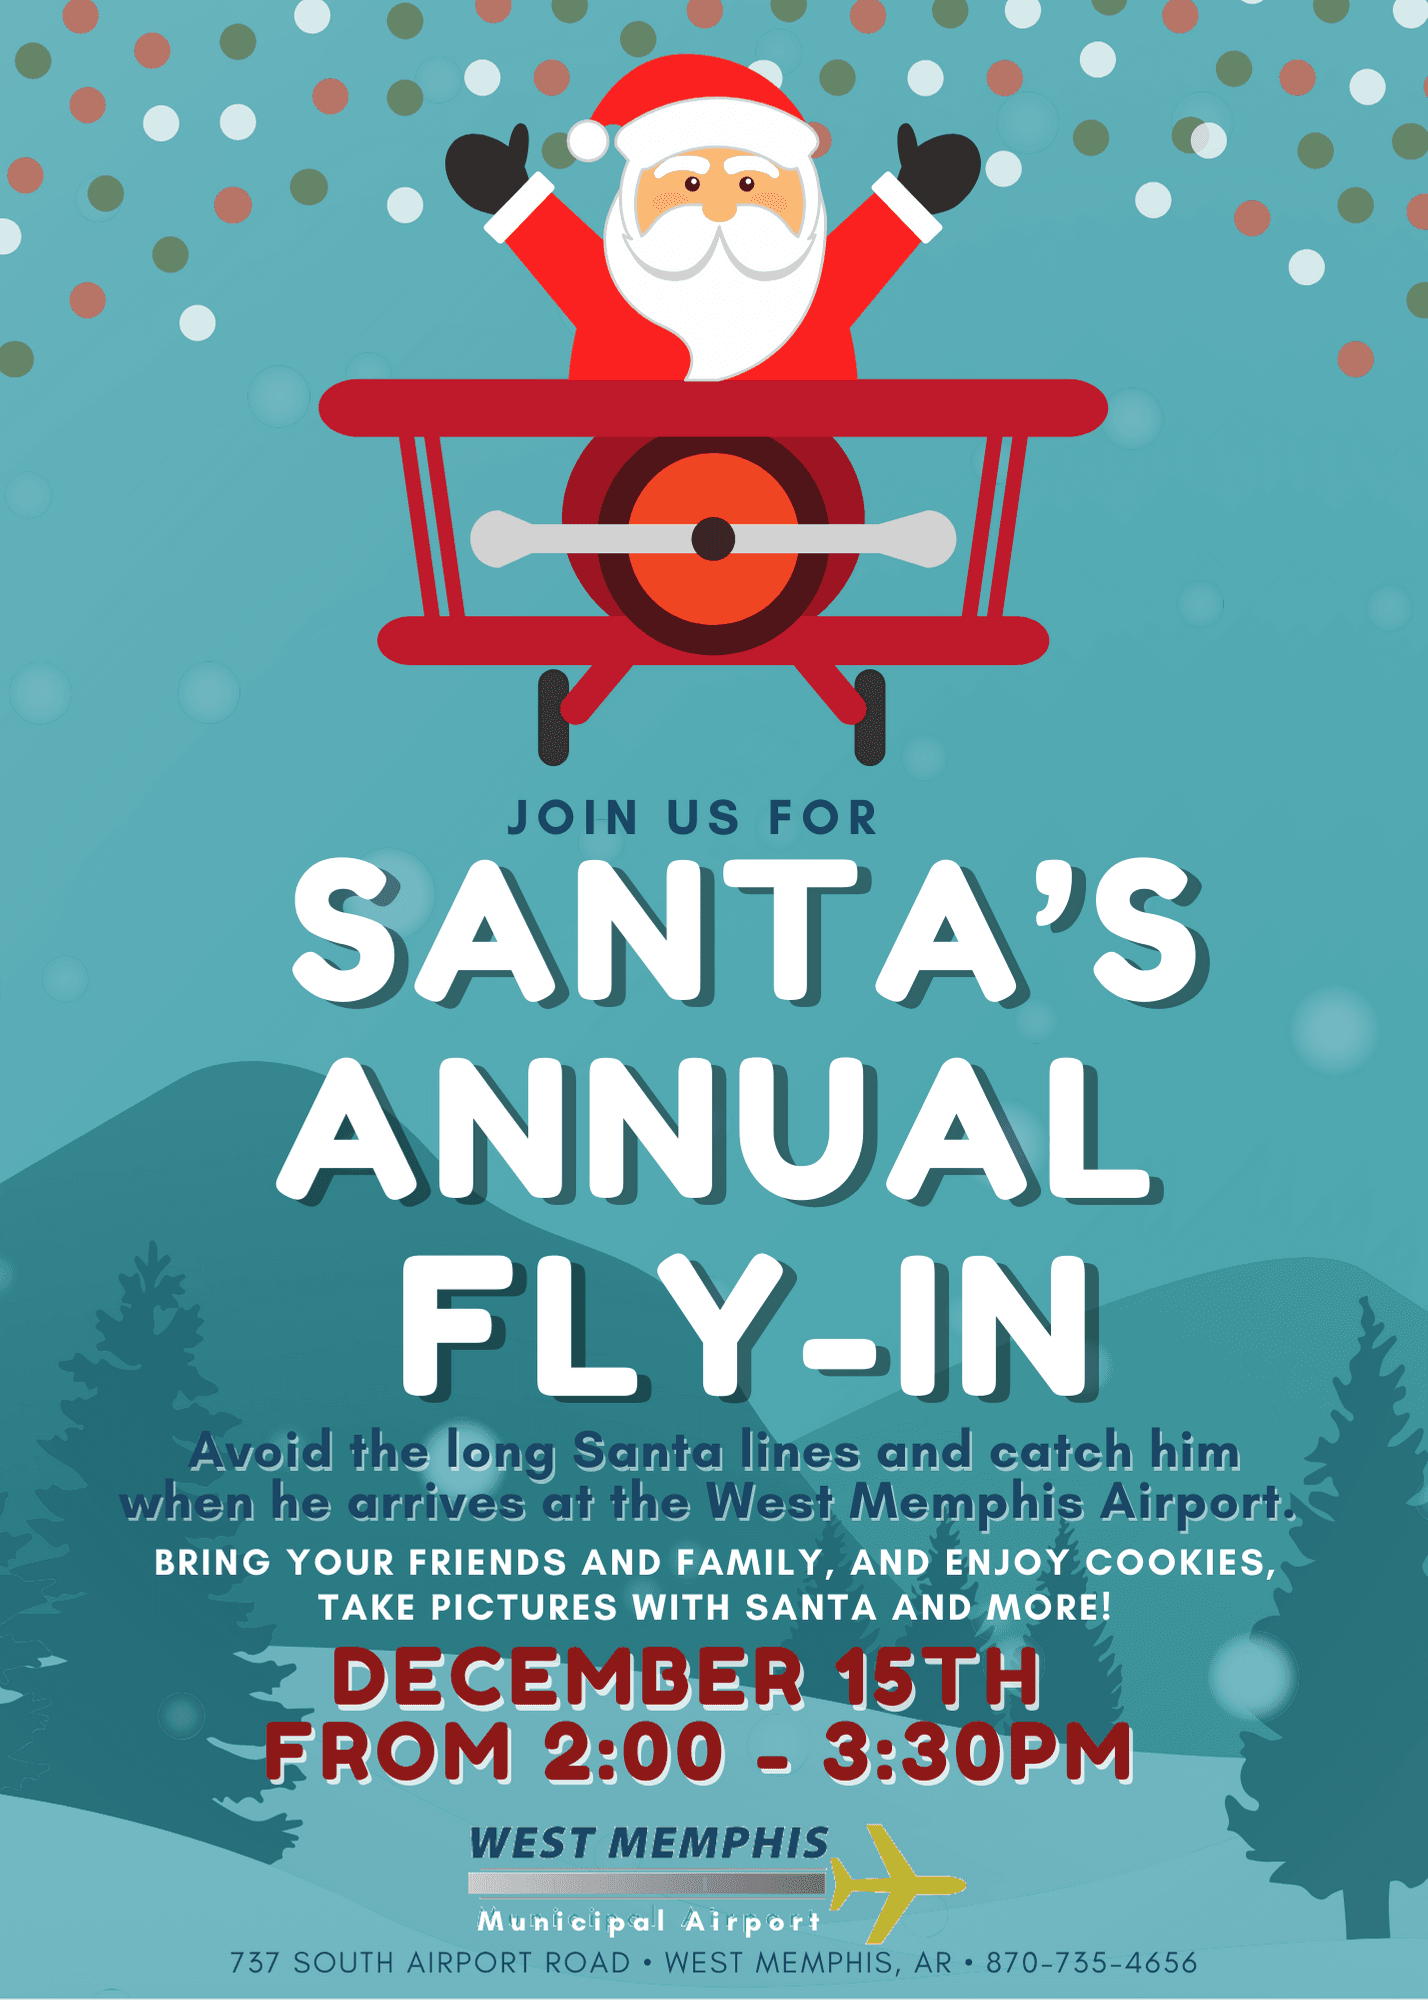 Santa's annual flying at the West Memphis Airport